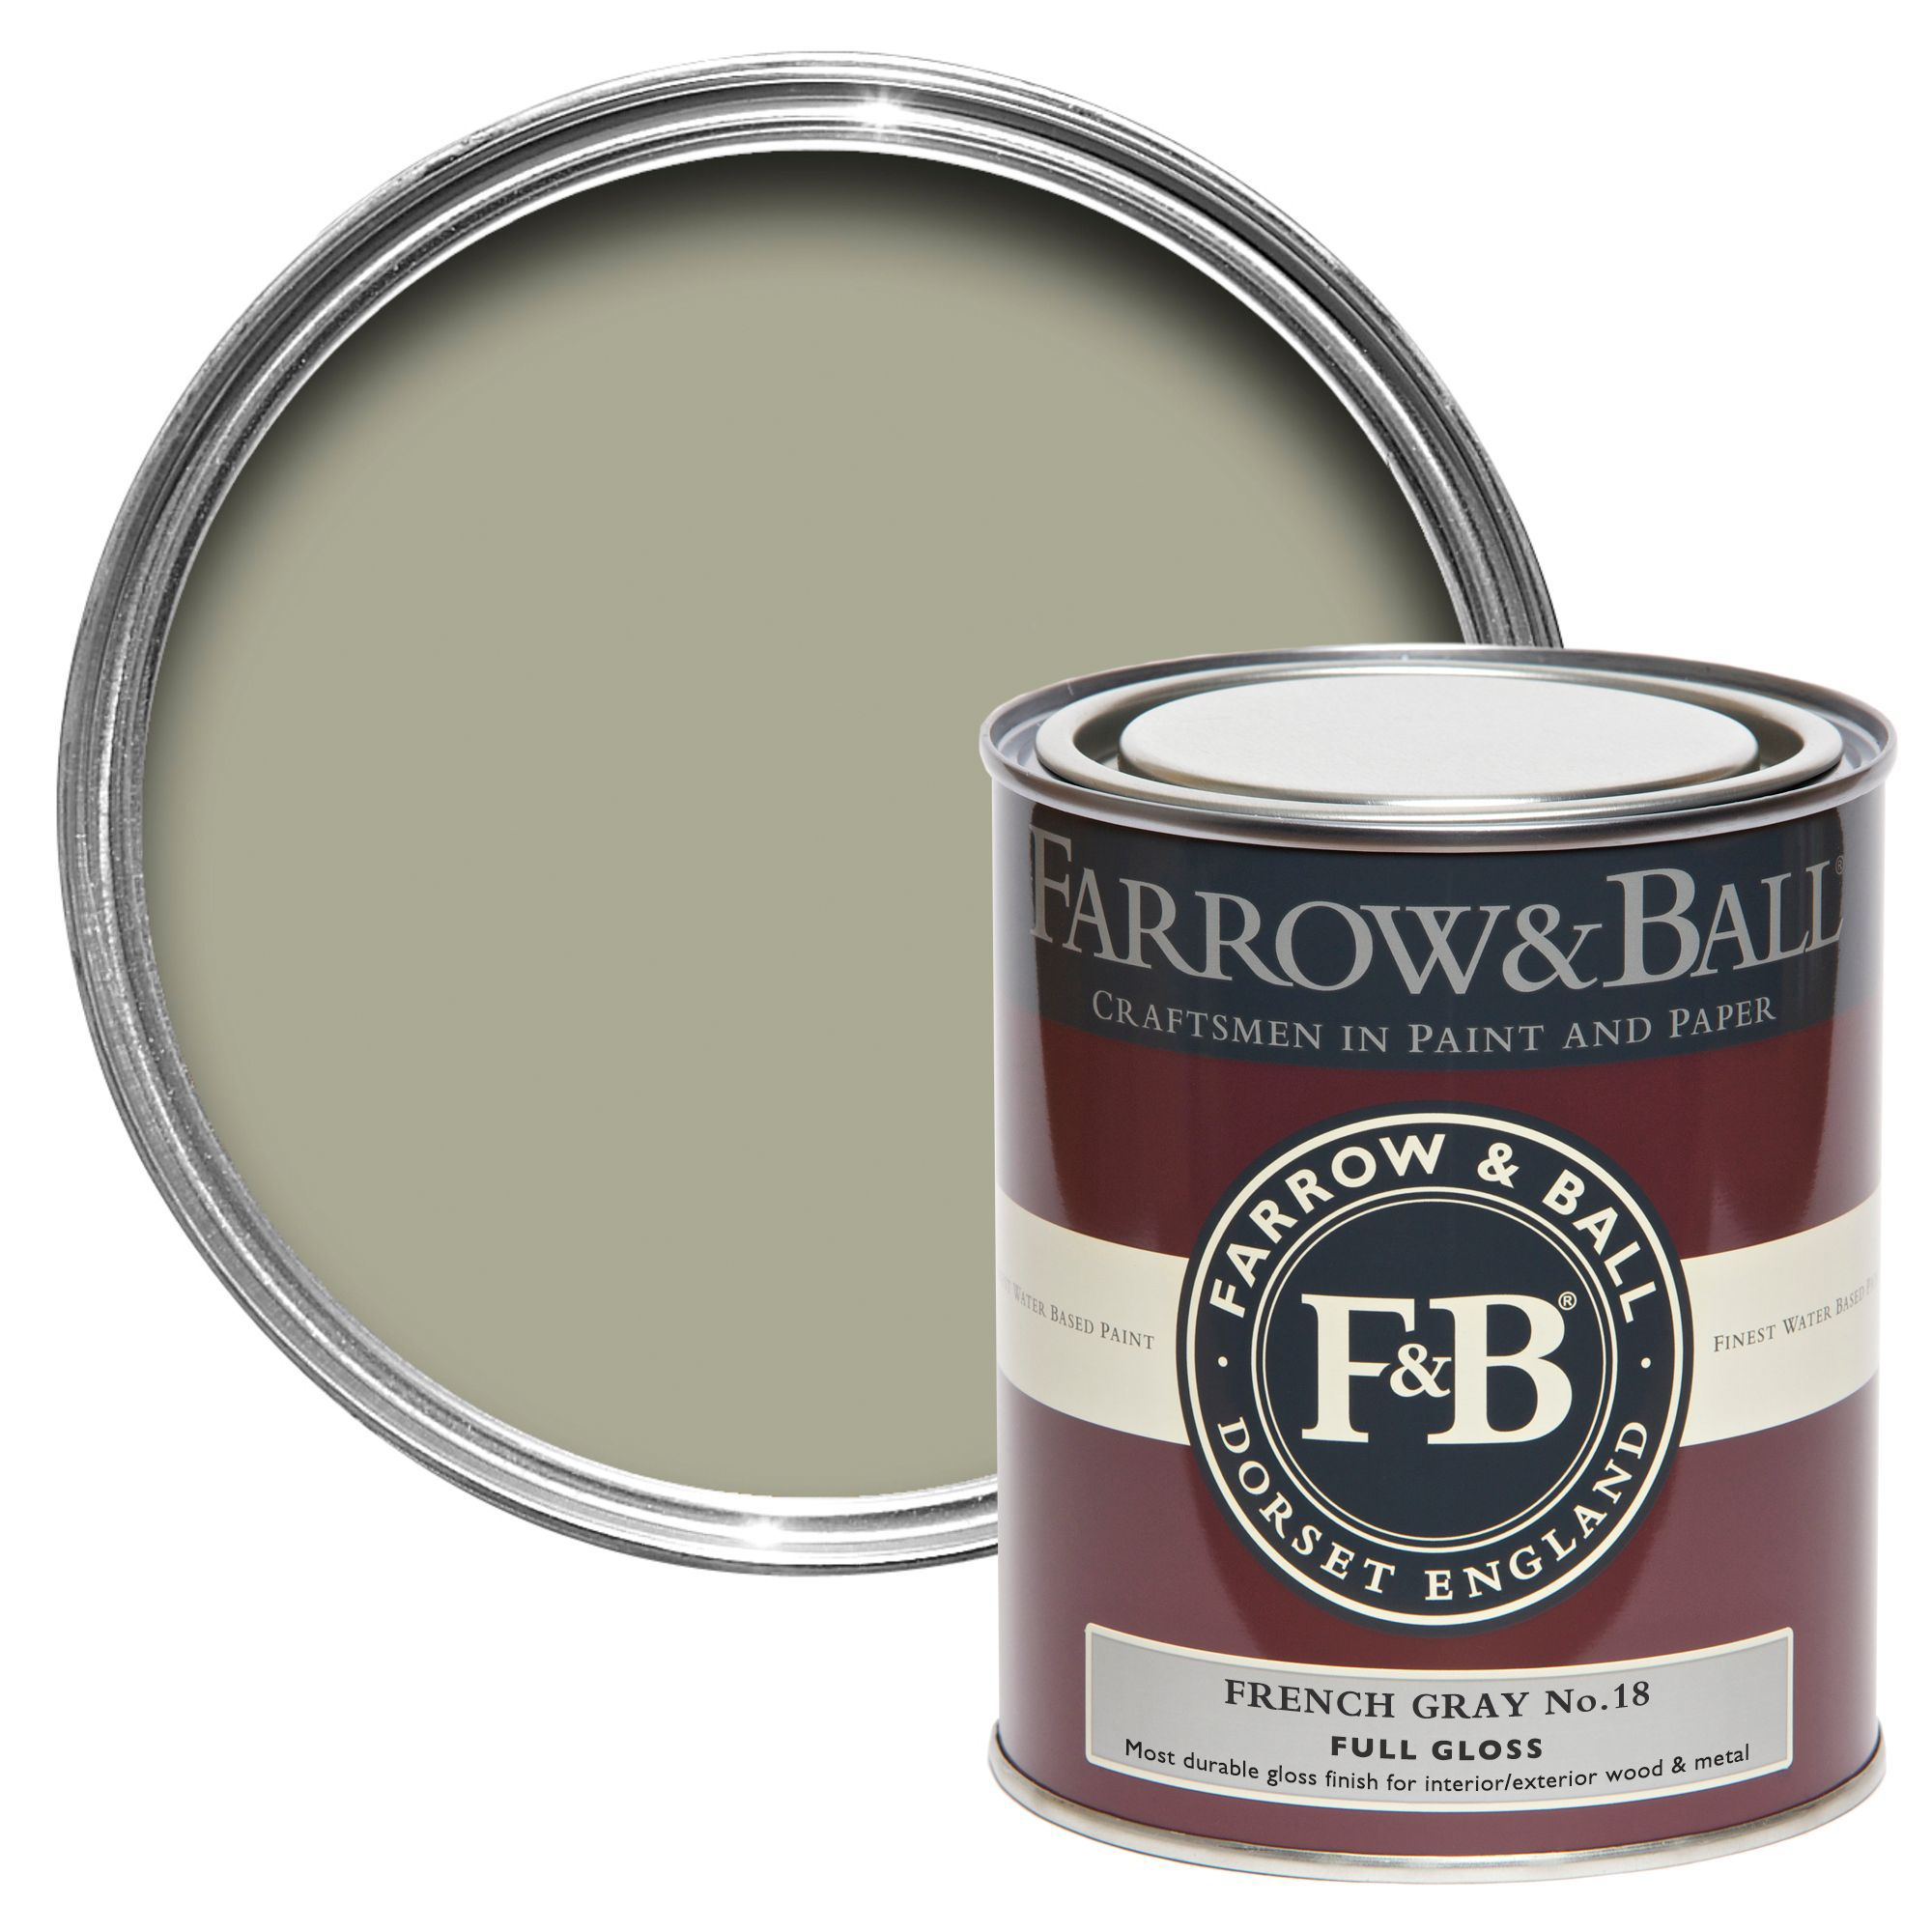 Farrow & Ball Interior & Exterior French Gray No.18 Gloss Paint ...